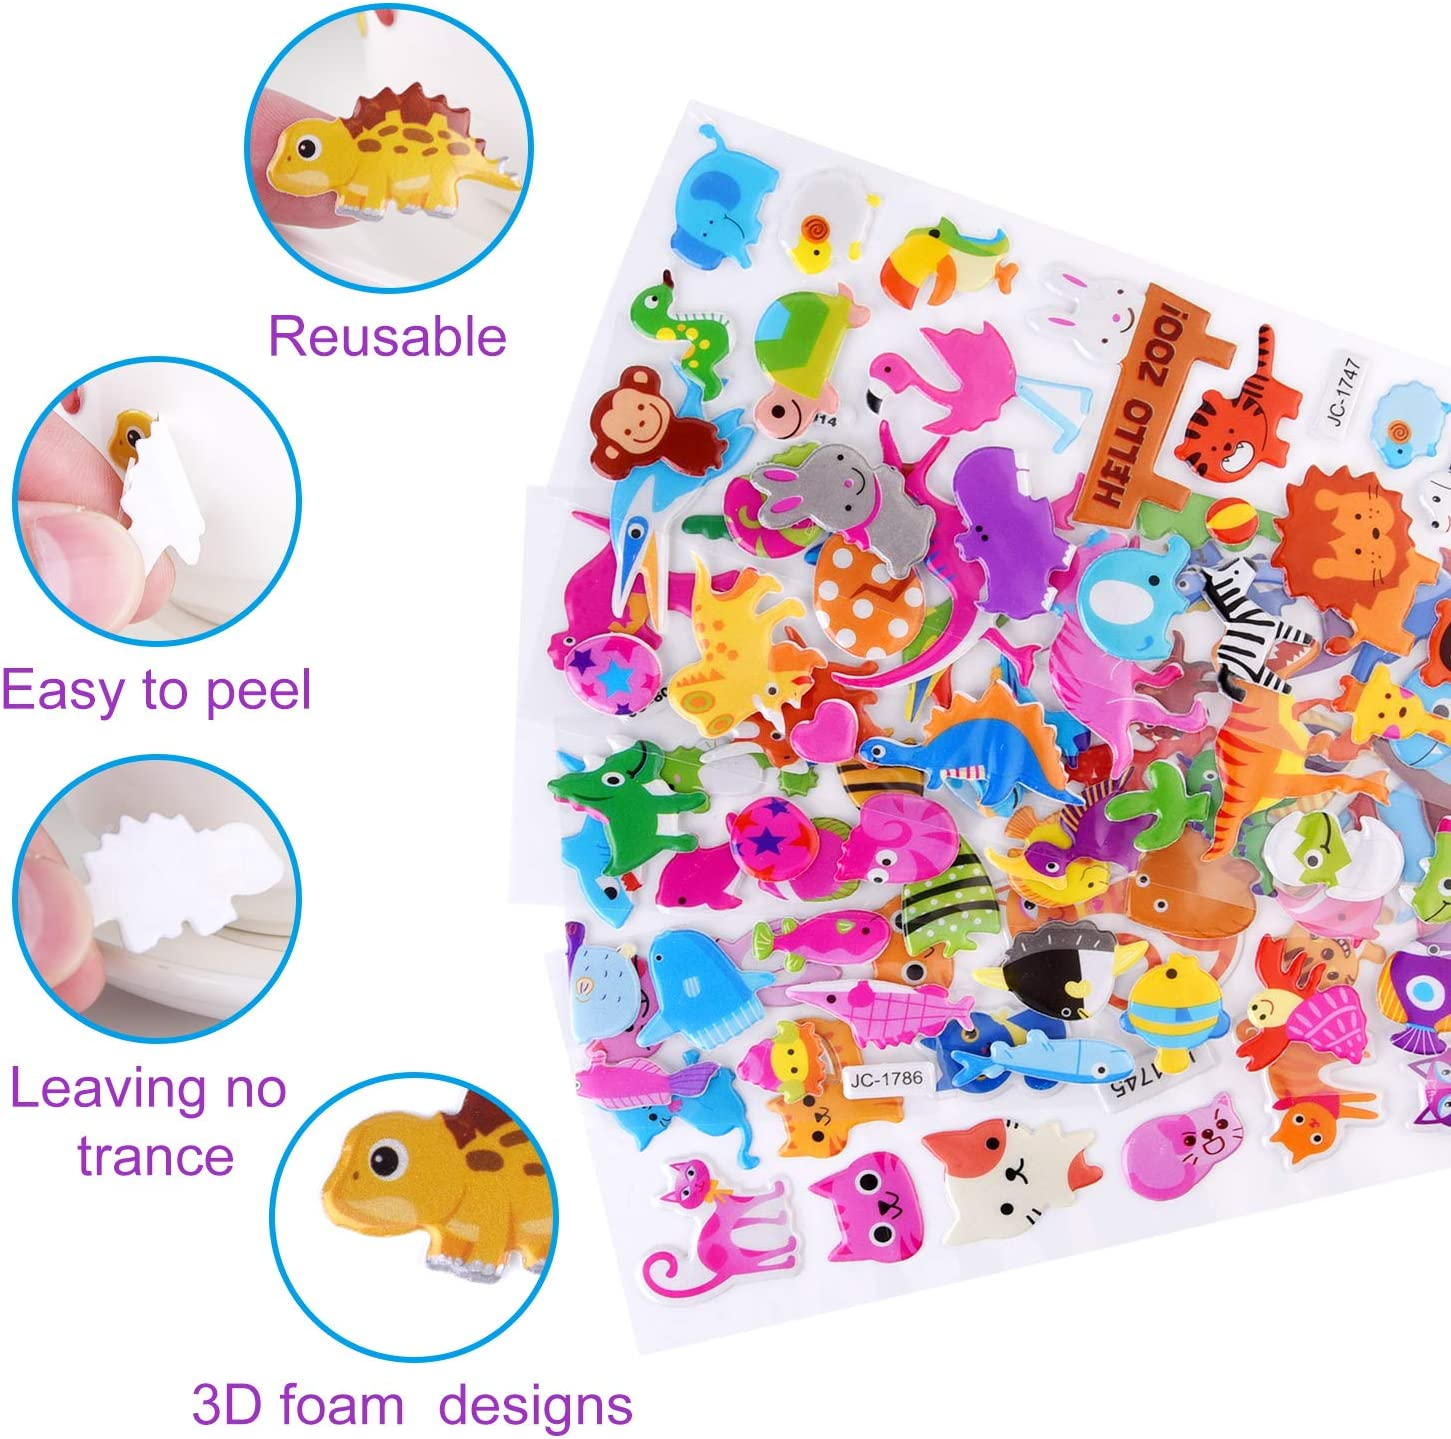 KUUQA 500Pcs 3D Stickers for Toddlers Puffy Stickers Cartoon Animals Craft Stickers for Kids Scrapbooking Bullet Journals 20 Sheets